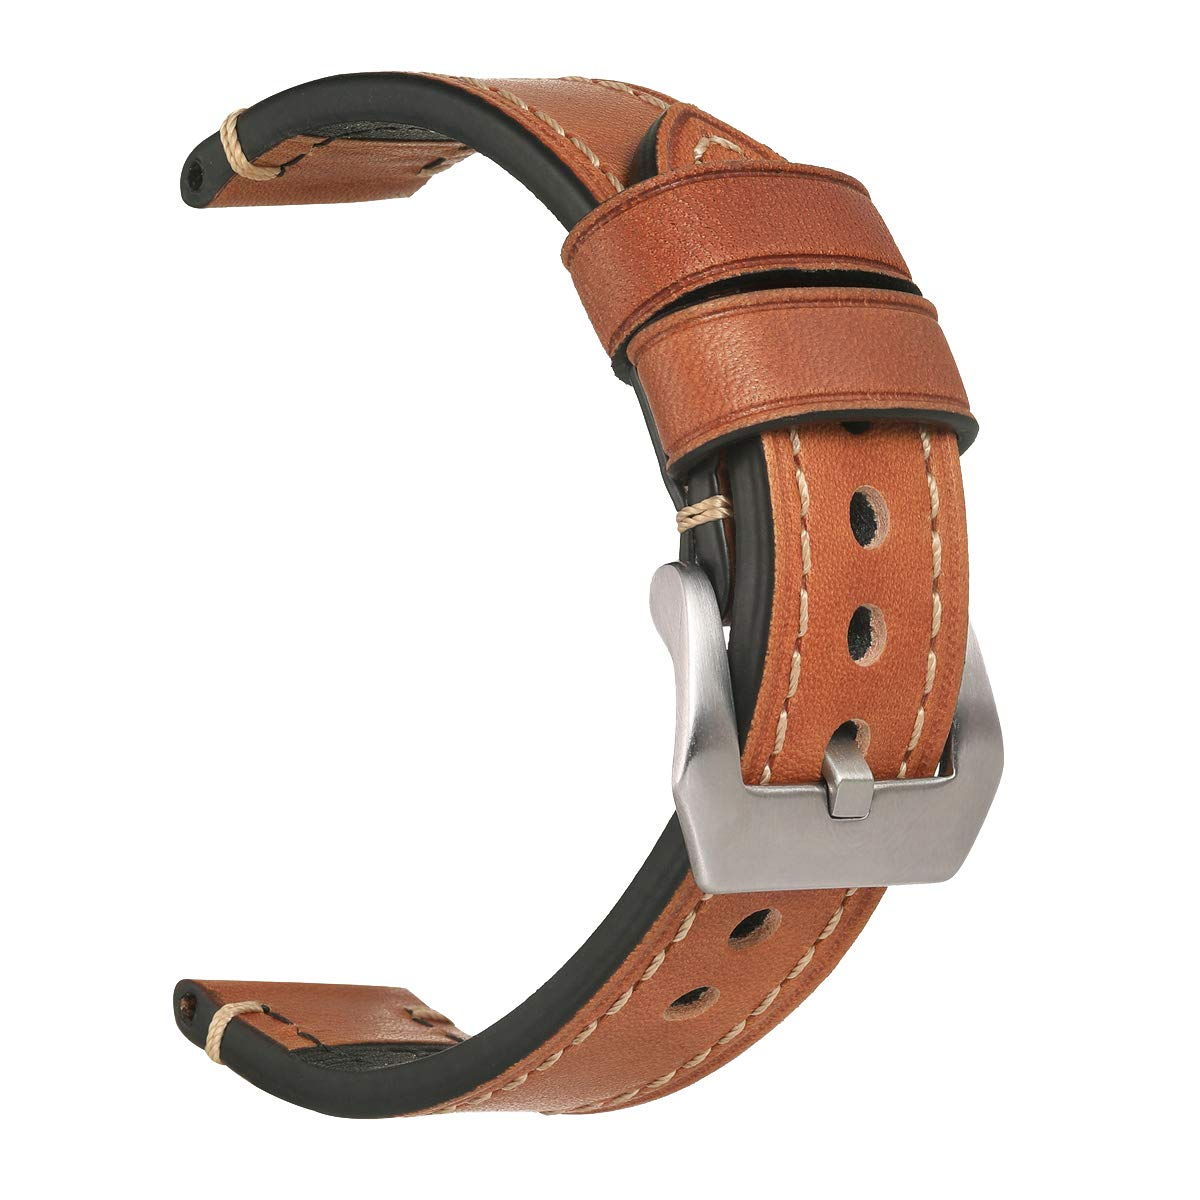 Mens Watch Strap,EACHE Vegetable Tanned 26mm Genuine Leather Handmade Watch Band for Tissot,Light Brown-Silver Buckle